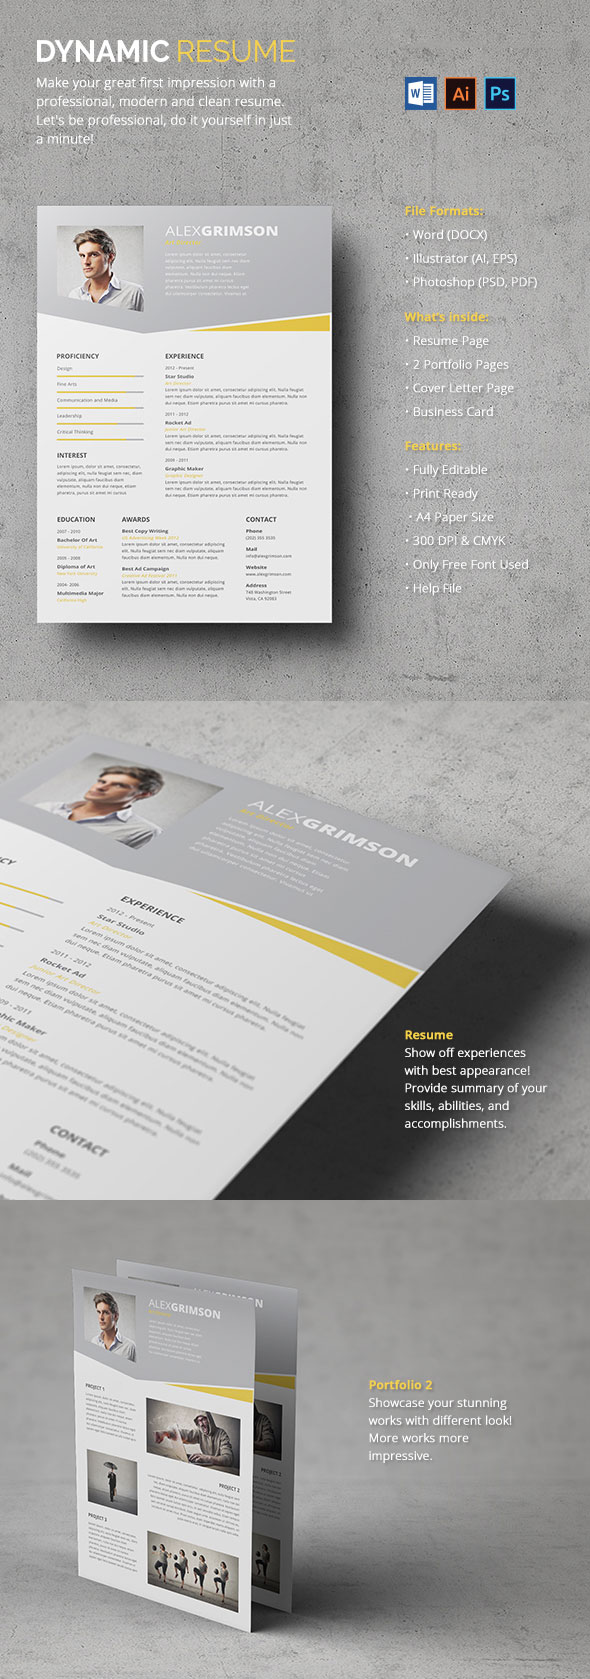 Dynamic Resume With Portfolio Pages Included